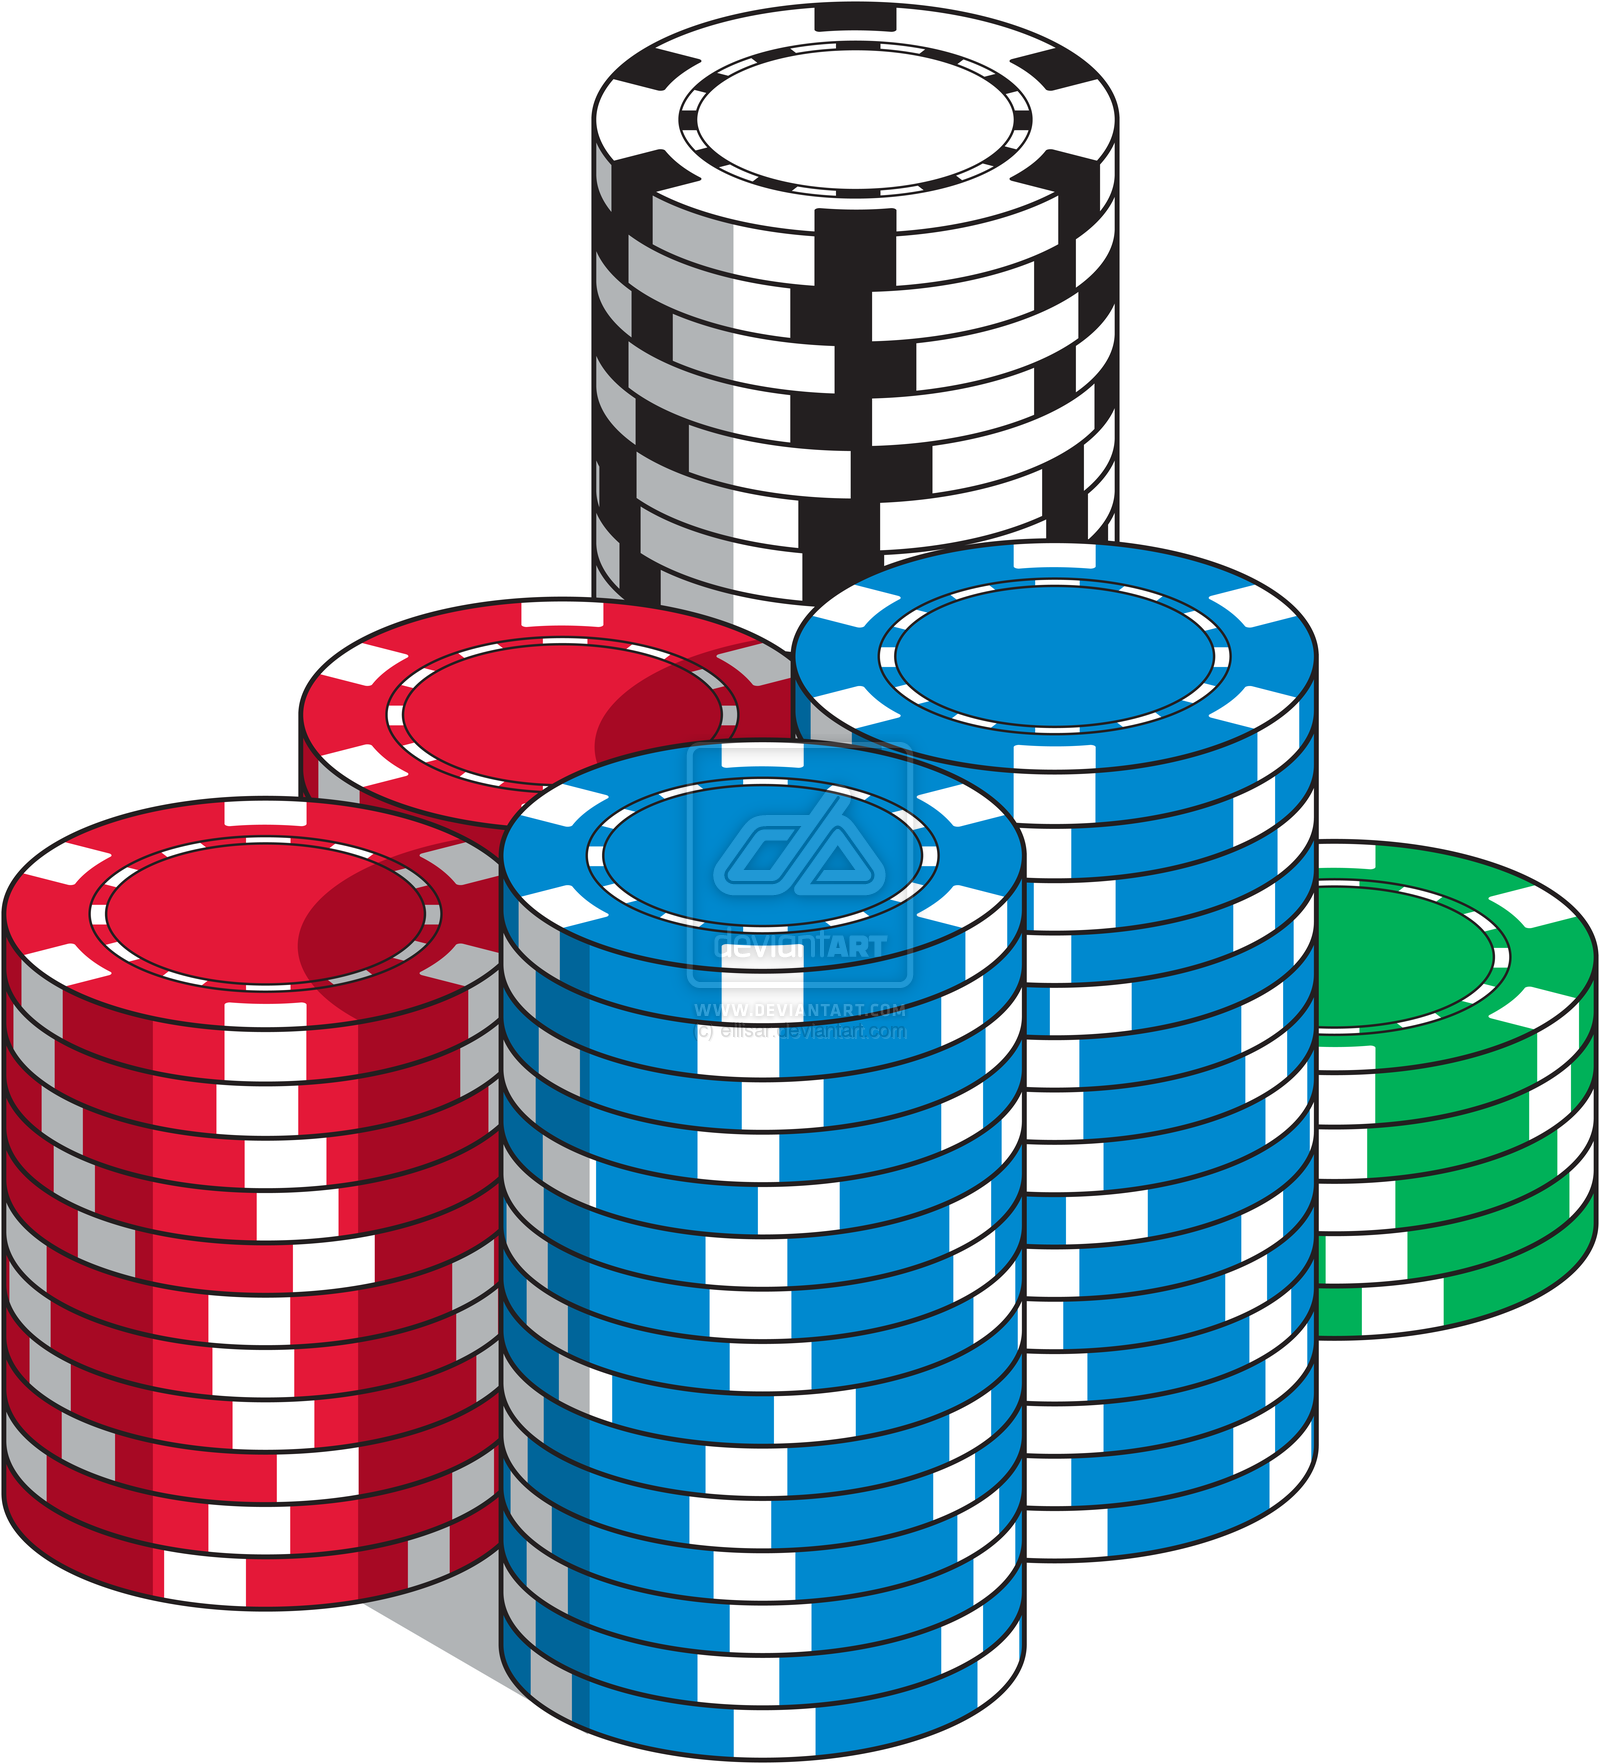 Black and white poker chip stack clipart vector library stock Poker Clipart | Free download best Poker Clipart on ClipArtMag.com vector library stock